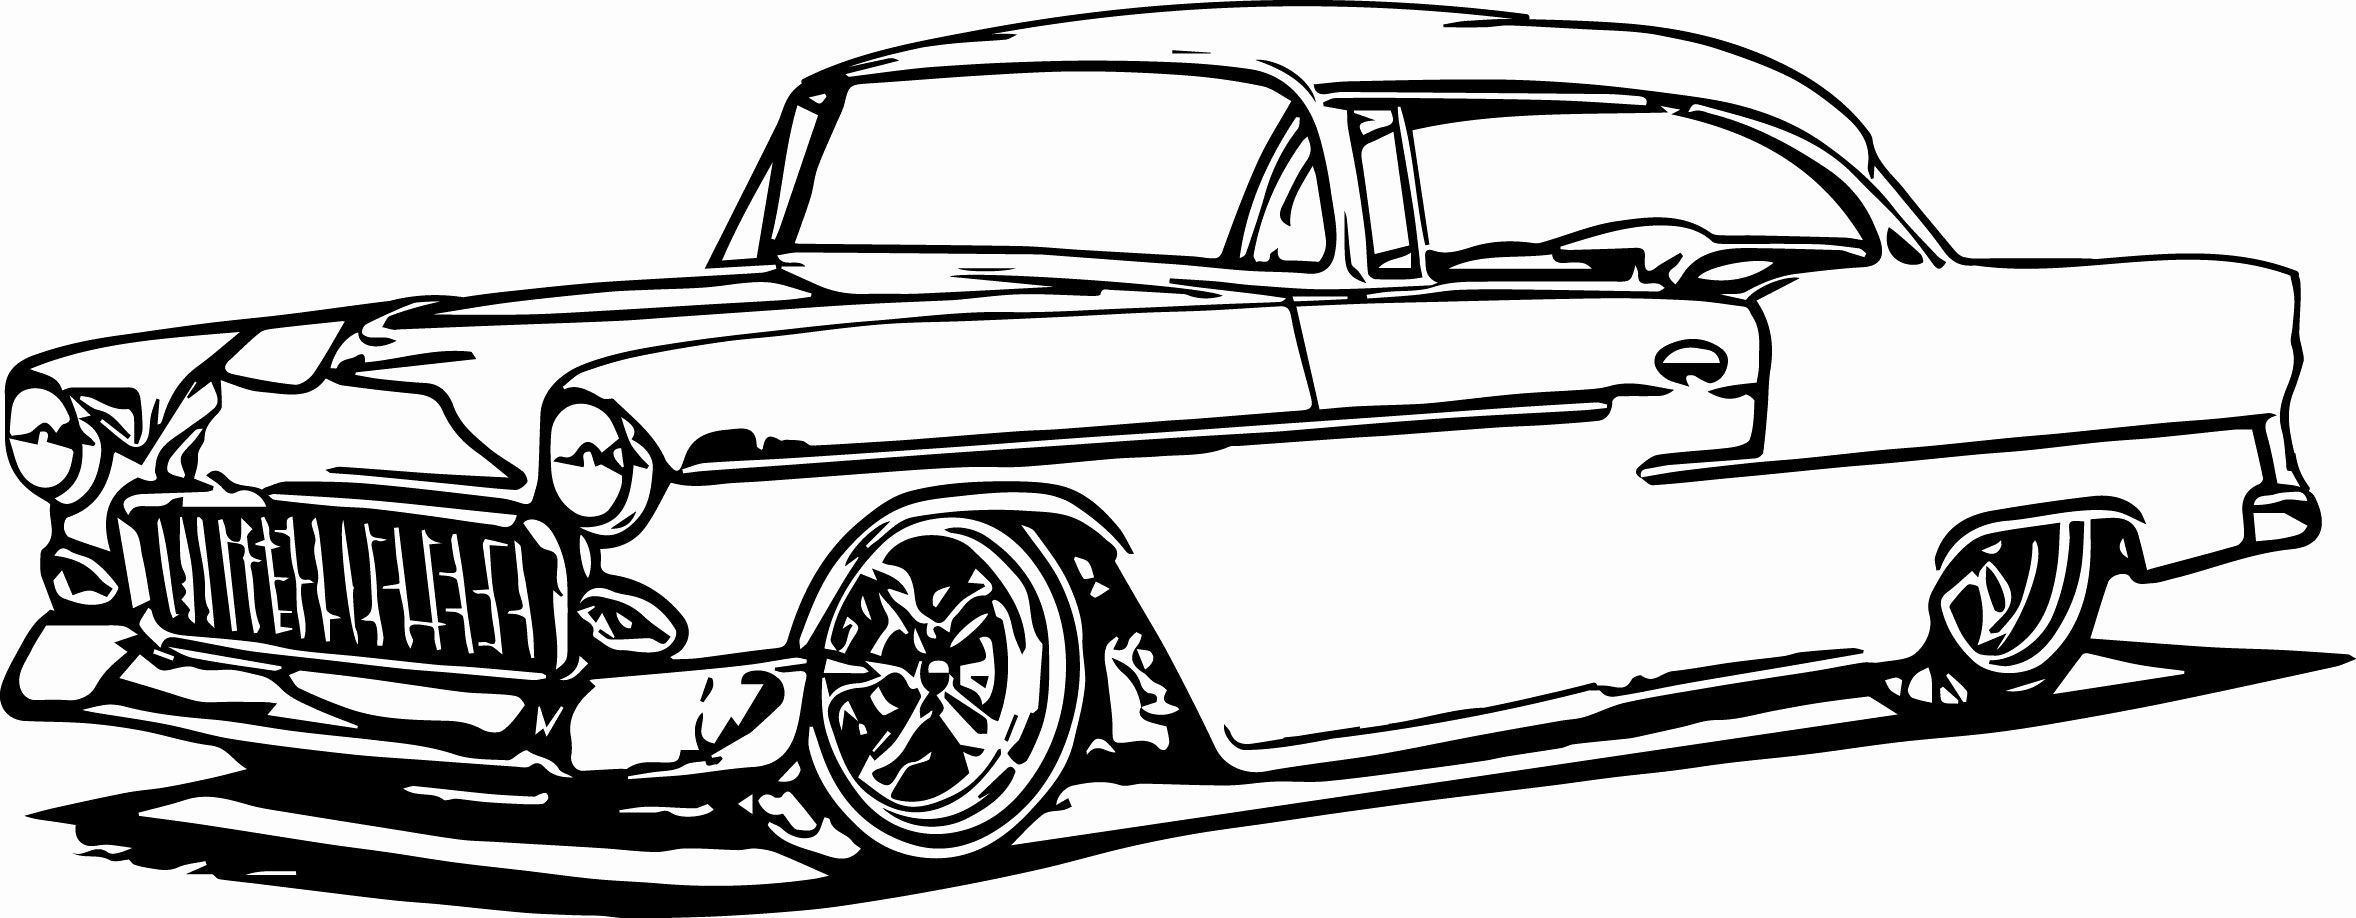 Car Coloring Book For Adults New Antique Car Coloring Pages Wecoloringpage Cars Coloring Pages Old School Cars Race Car Coloring Pages